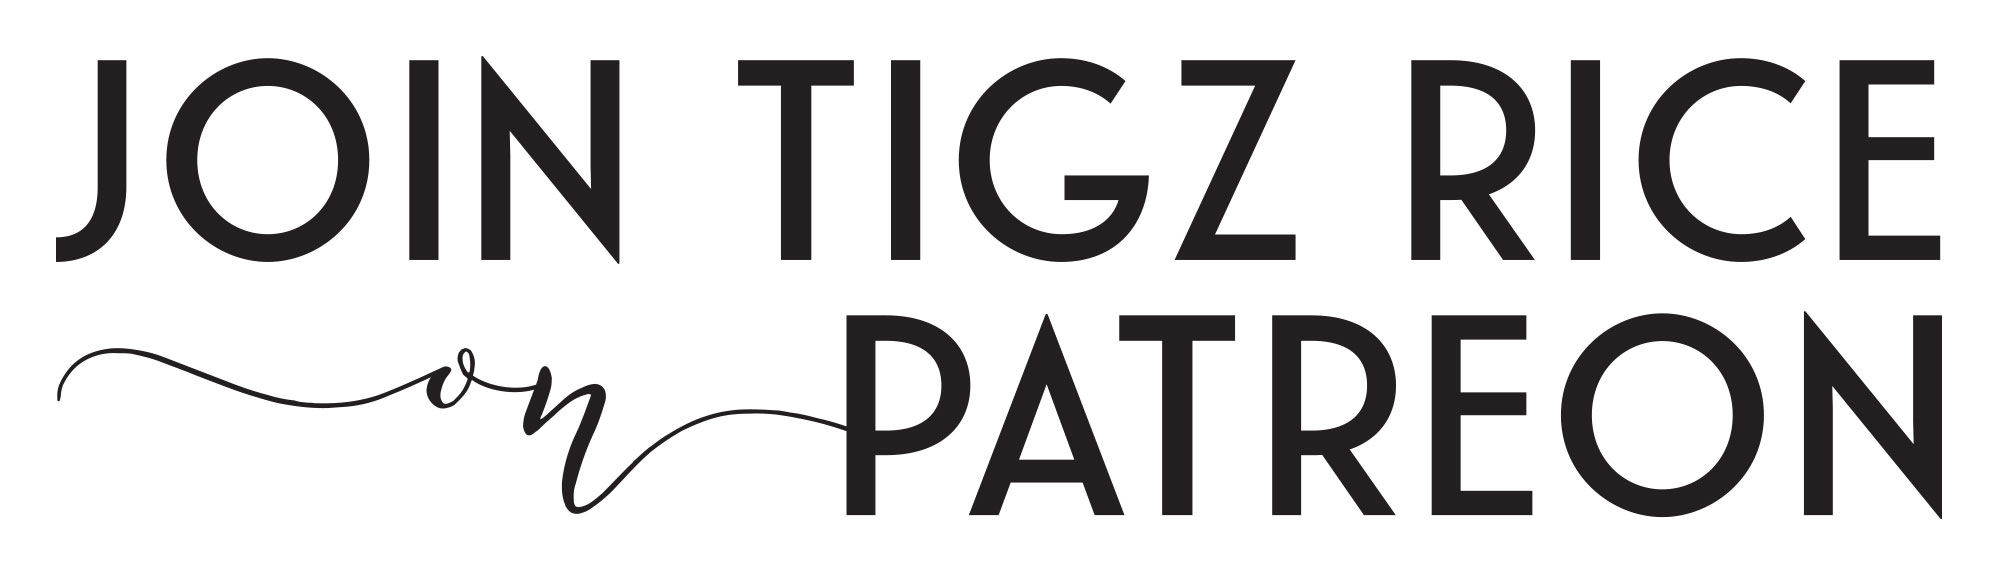 Logo Join Tigz Rice On Patreon for Behind The Scenes Boudoir Content